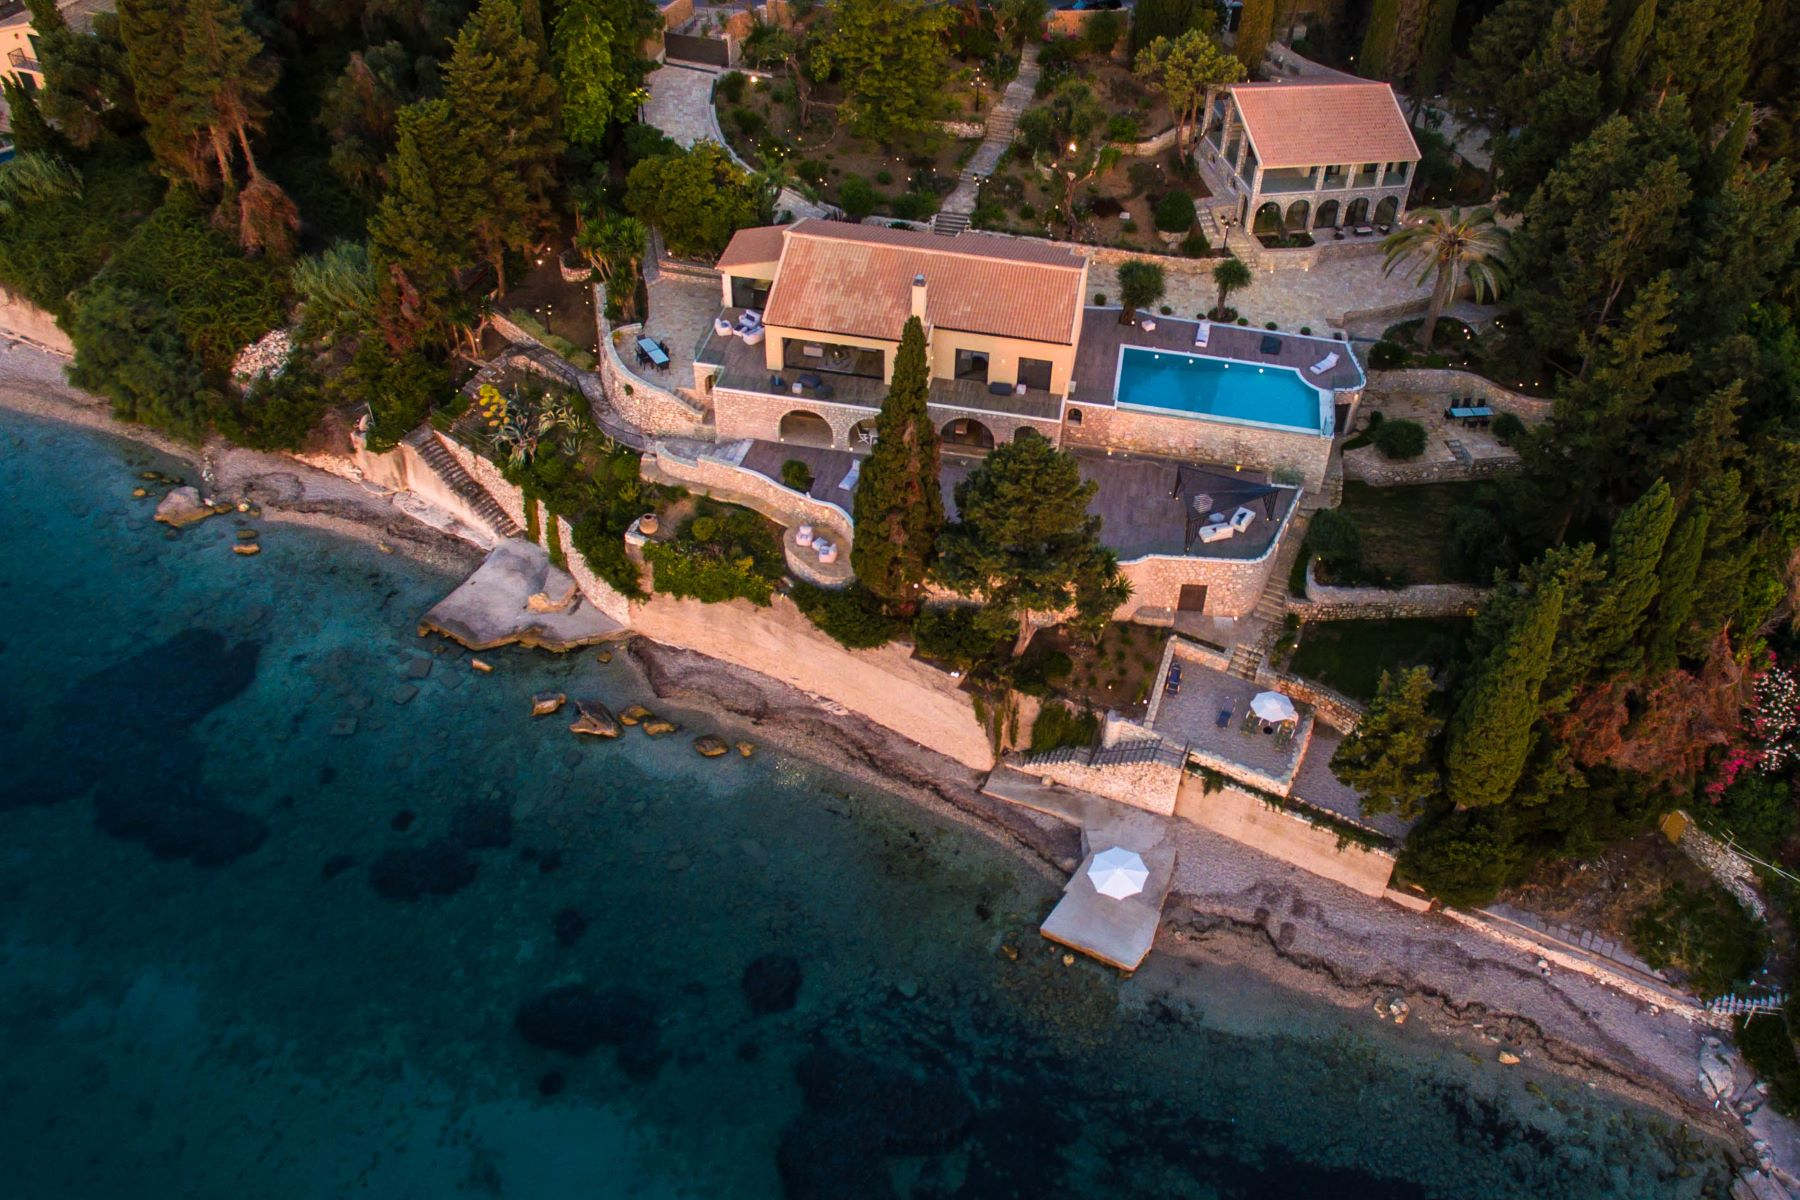 Single Family Home for Sale at Iconic Shore Corfu, Ionian Islands Greece